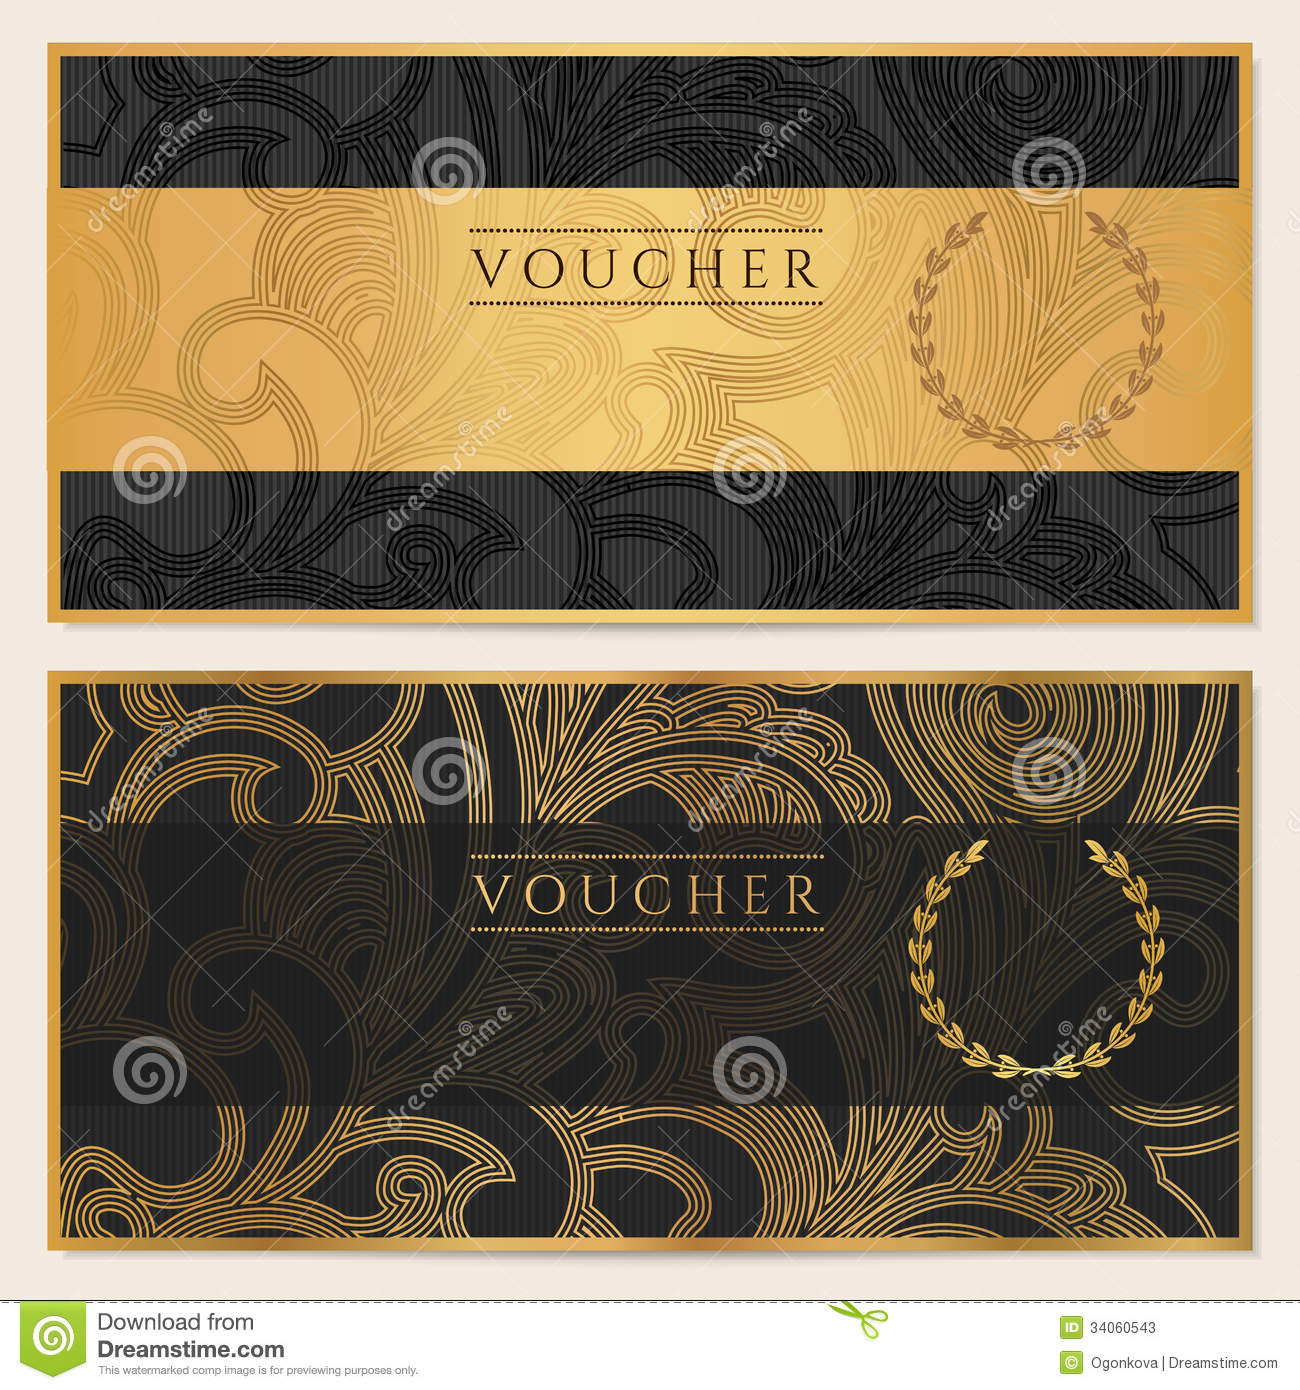 Voucher Gift Certificate Coupon Ticket Pattern Stock Photos Image 34060543